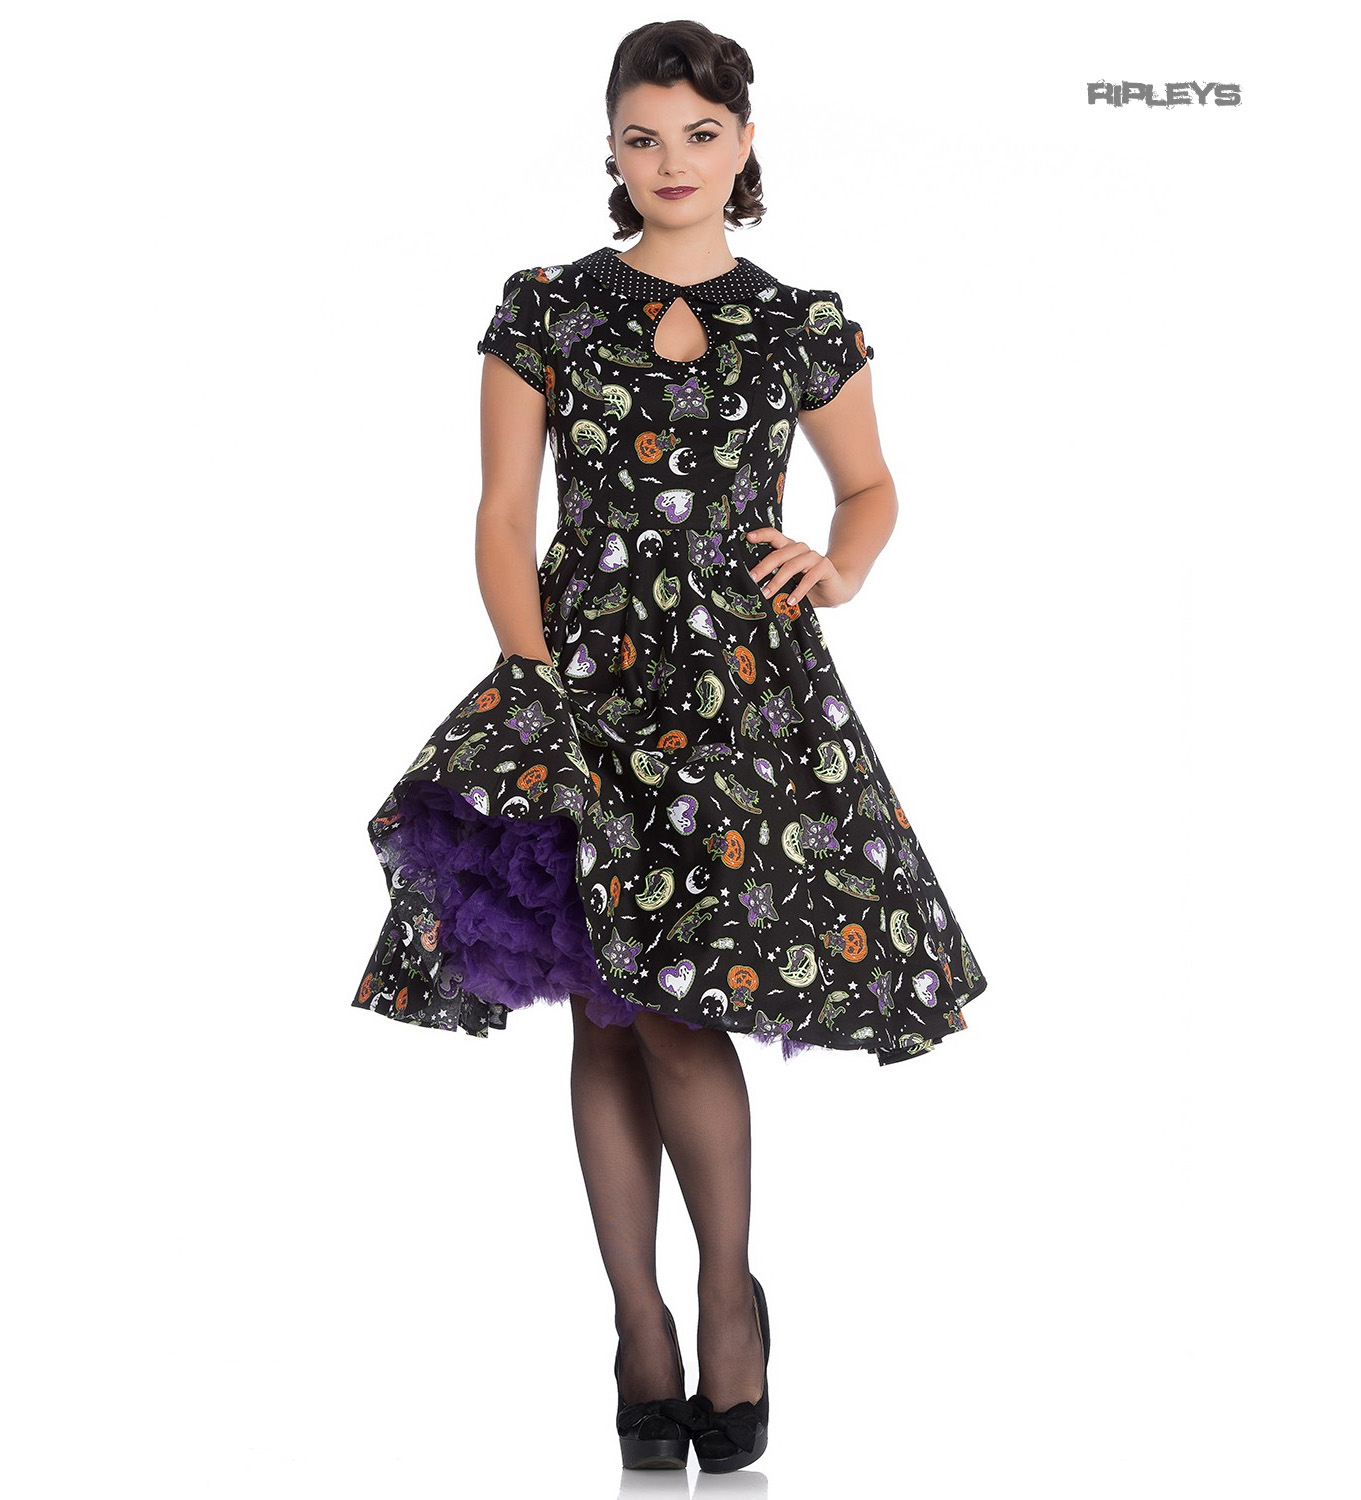 Hell-Bunny-50s-Black-Pin-Up-Dress-Horror-Witchy-SALEM-Halloween-All-Sizes thumbnail 22